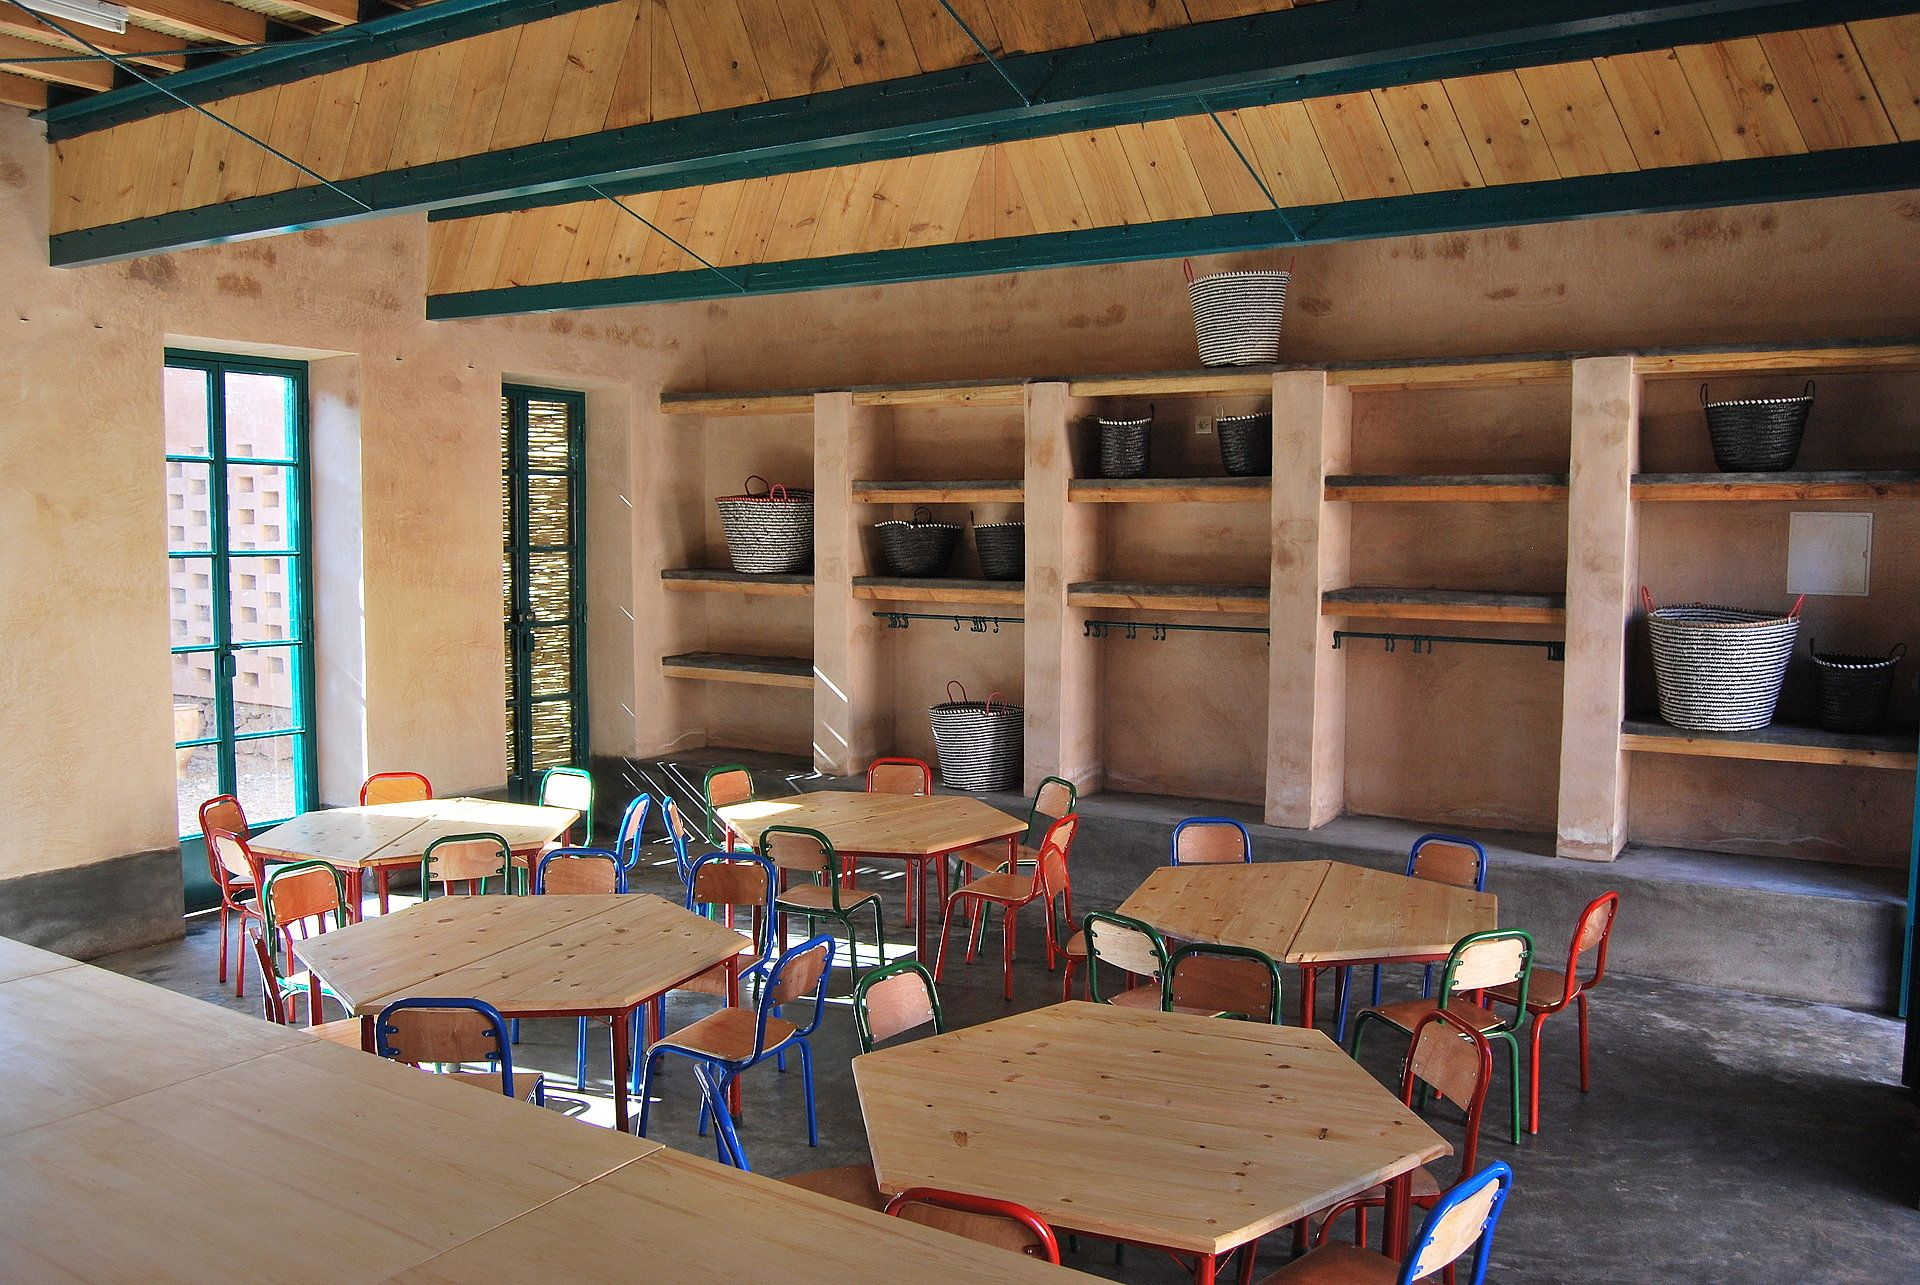 Bc architects nursery school in ouled merzoug morocco